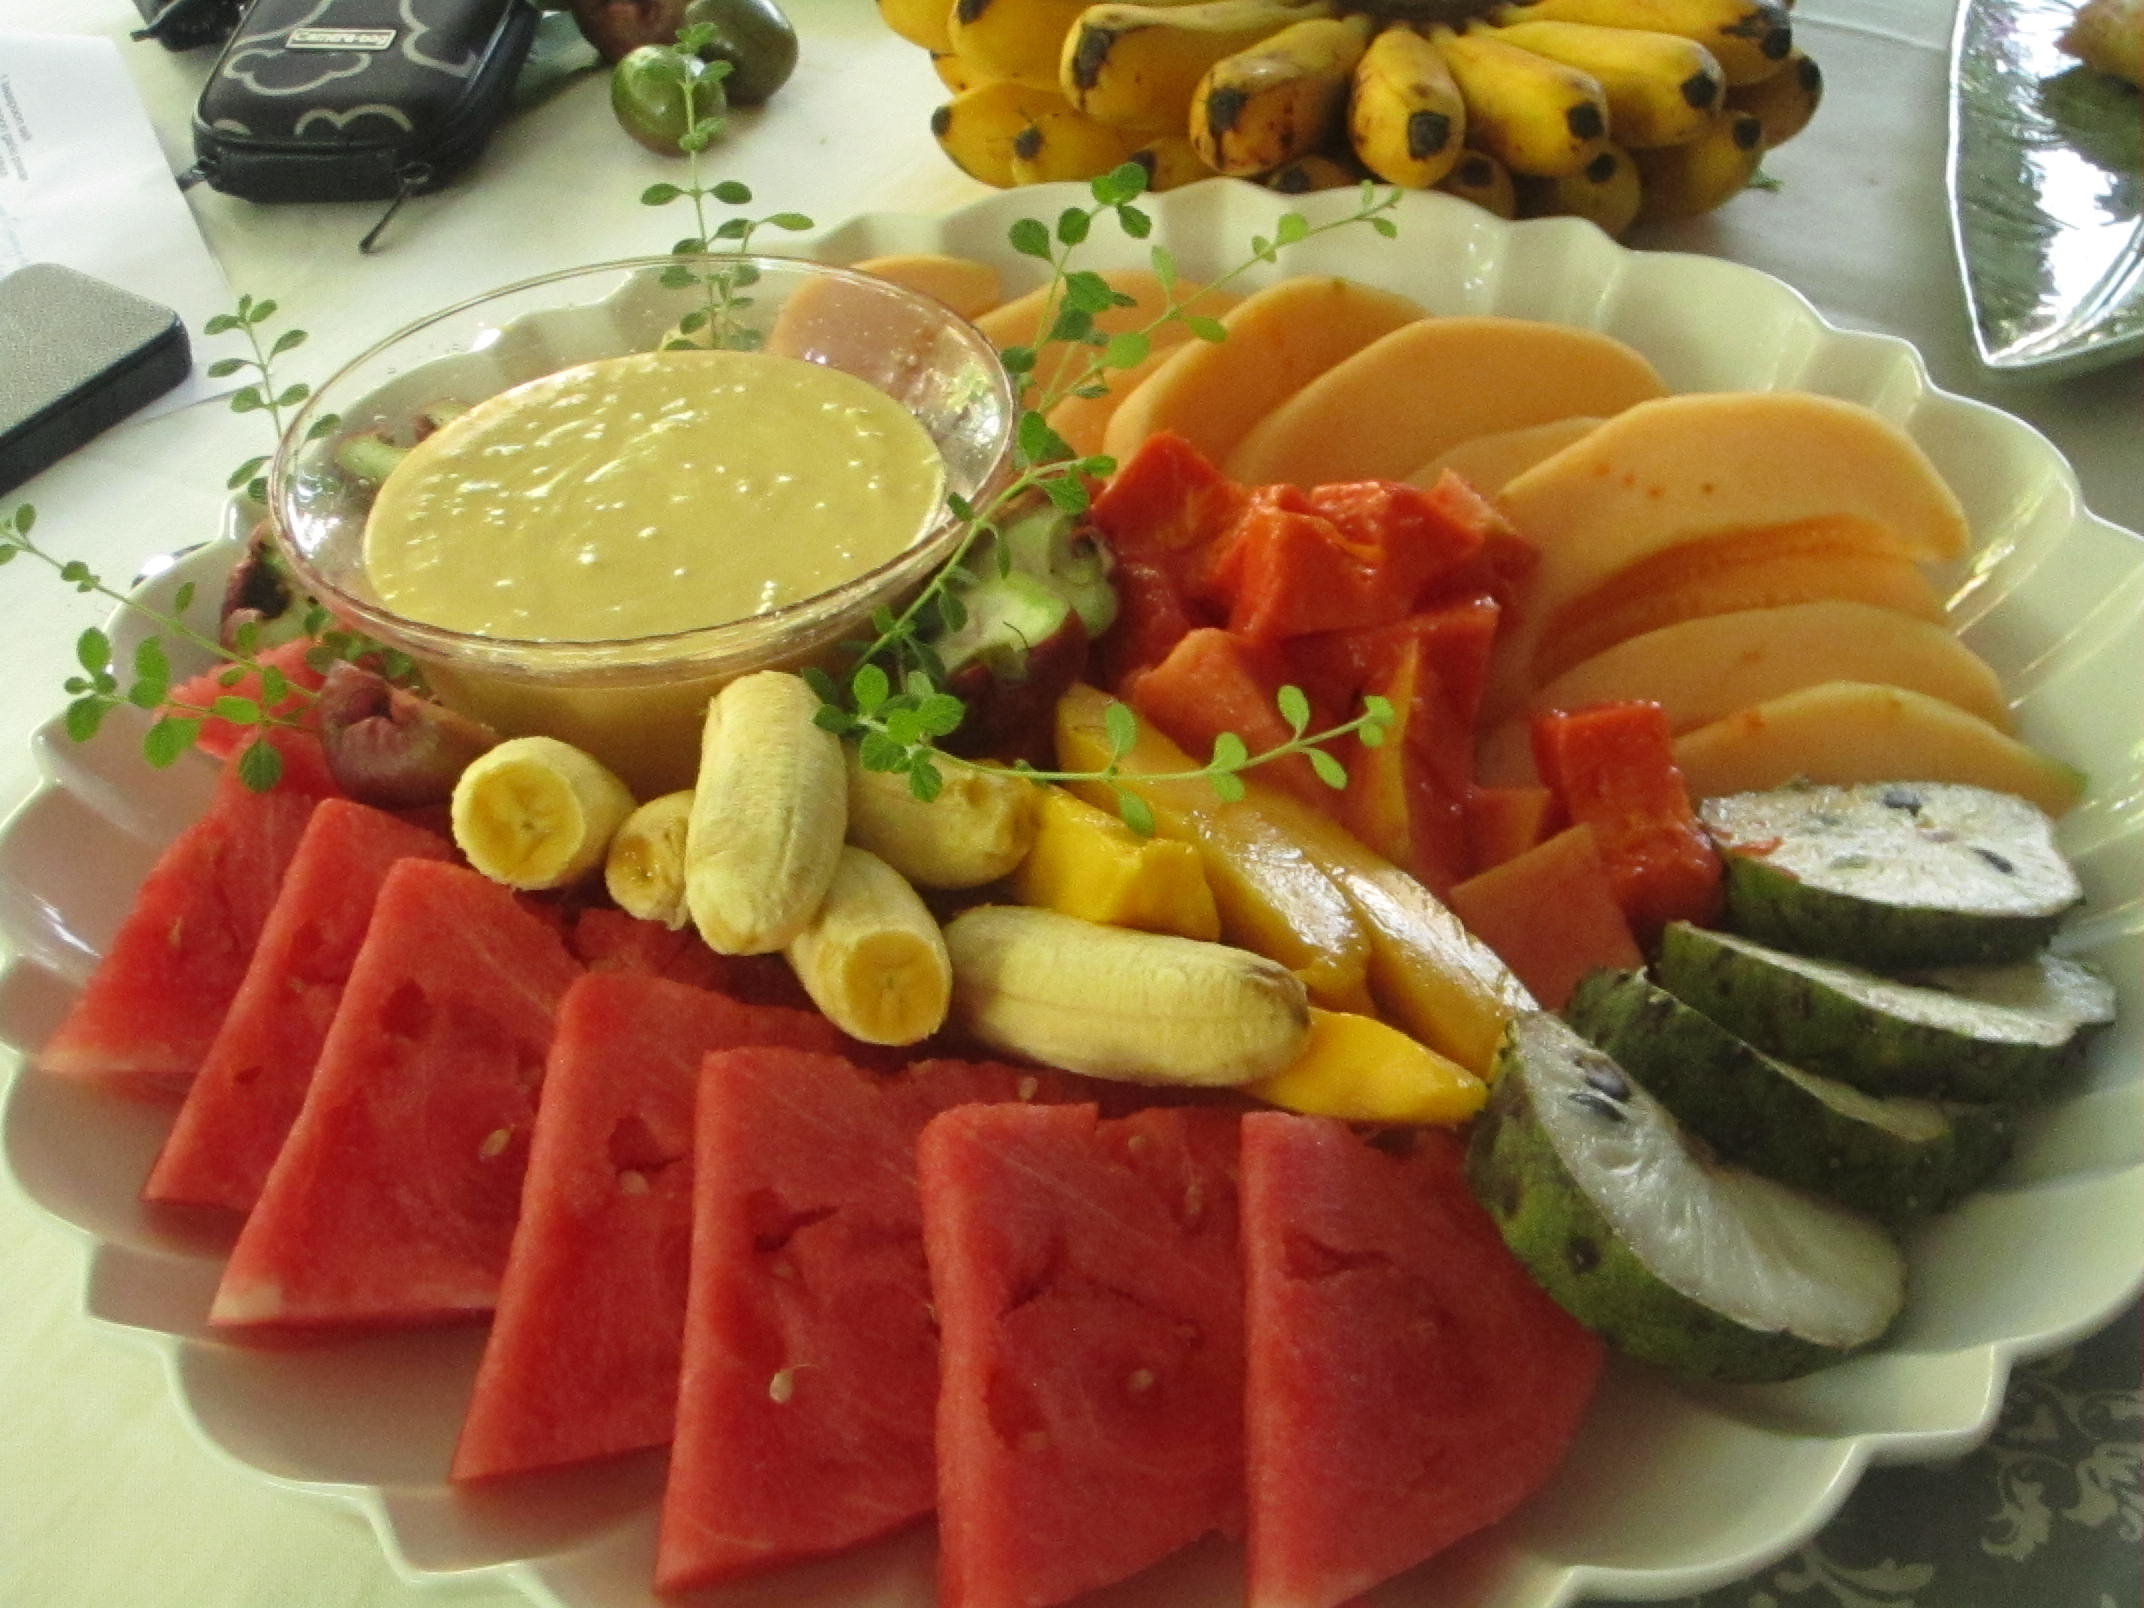 fruits served with a quick and creamy mango dip fresh